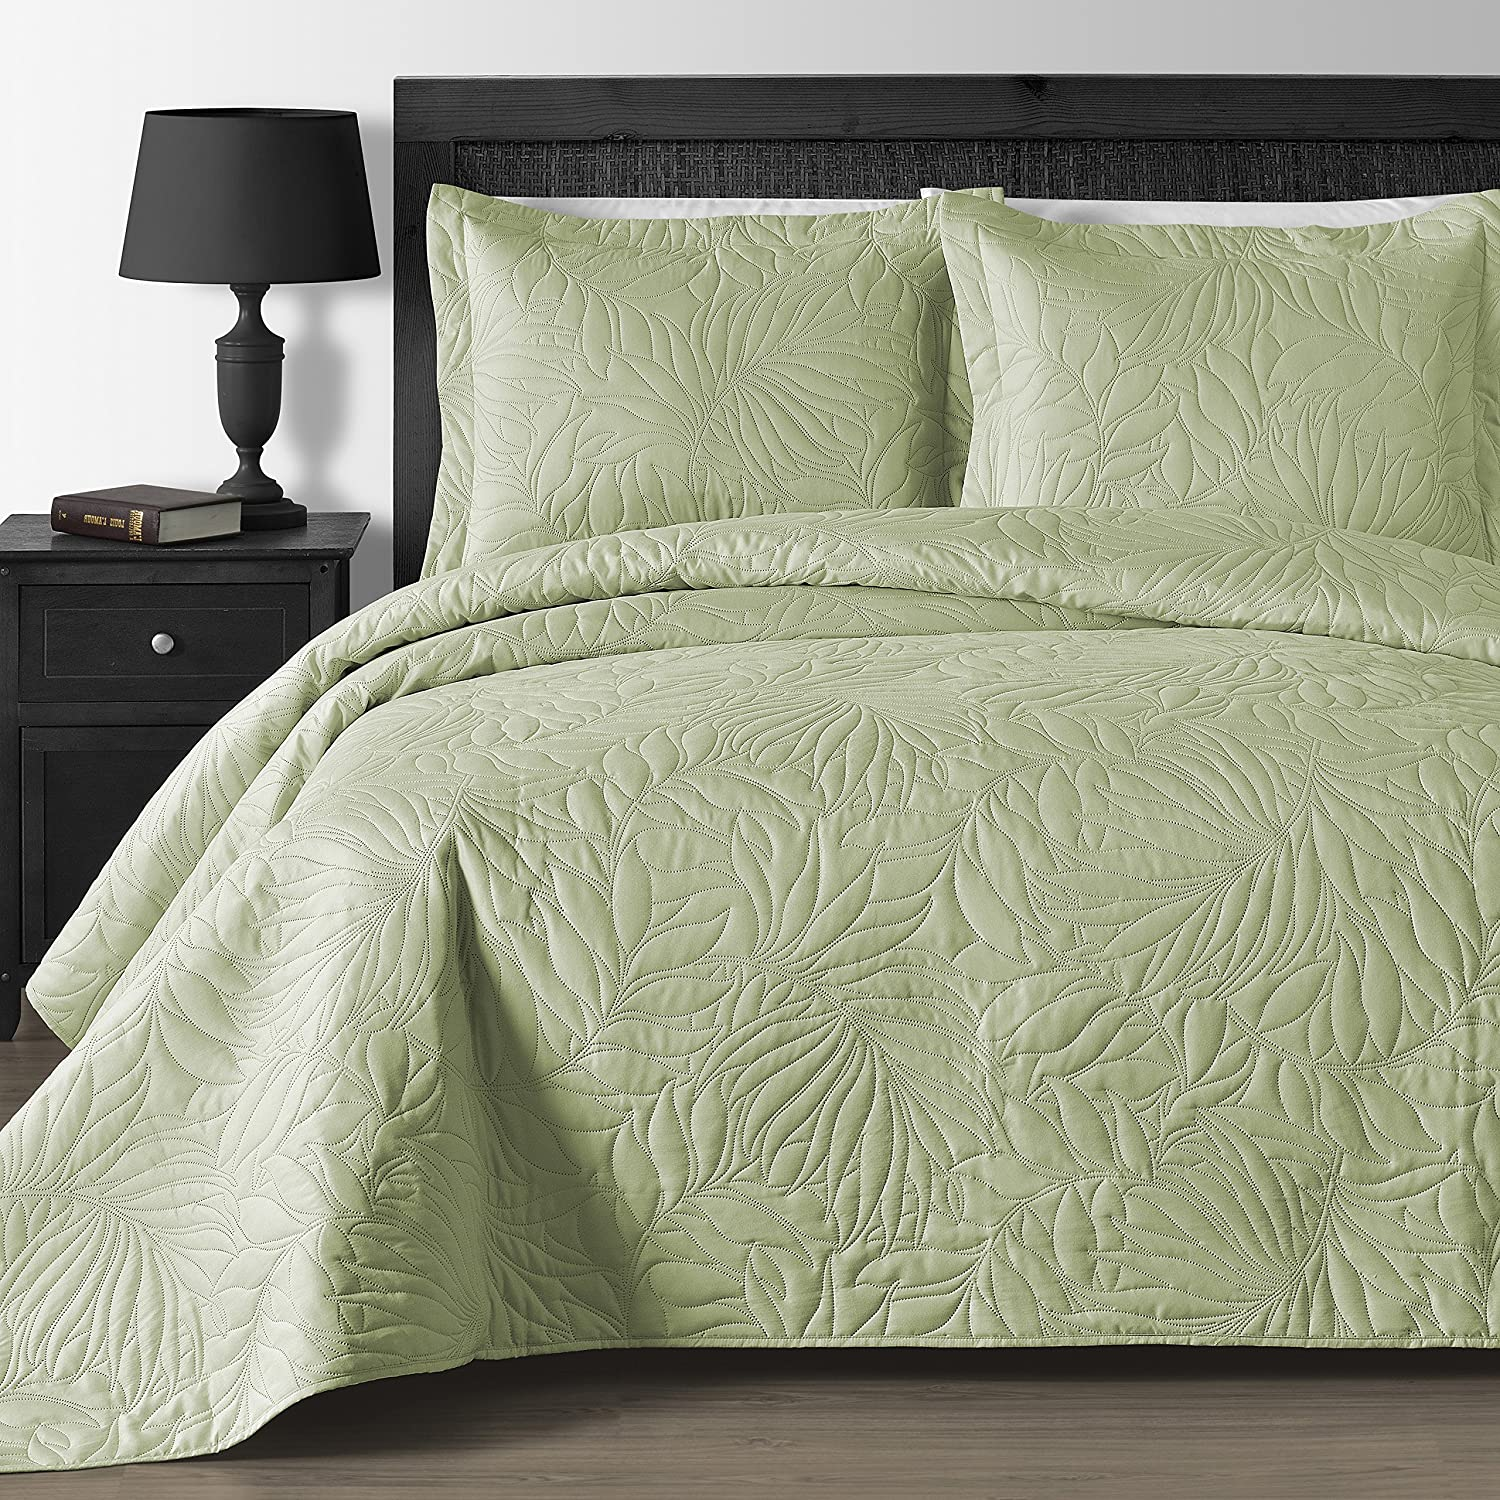 Comfy Bedding Extra Lightweight and Oversized Thermal Pressing Leafage 3-piece Coverlet Set